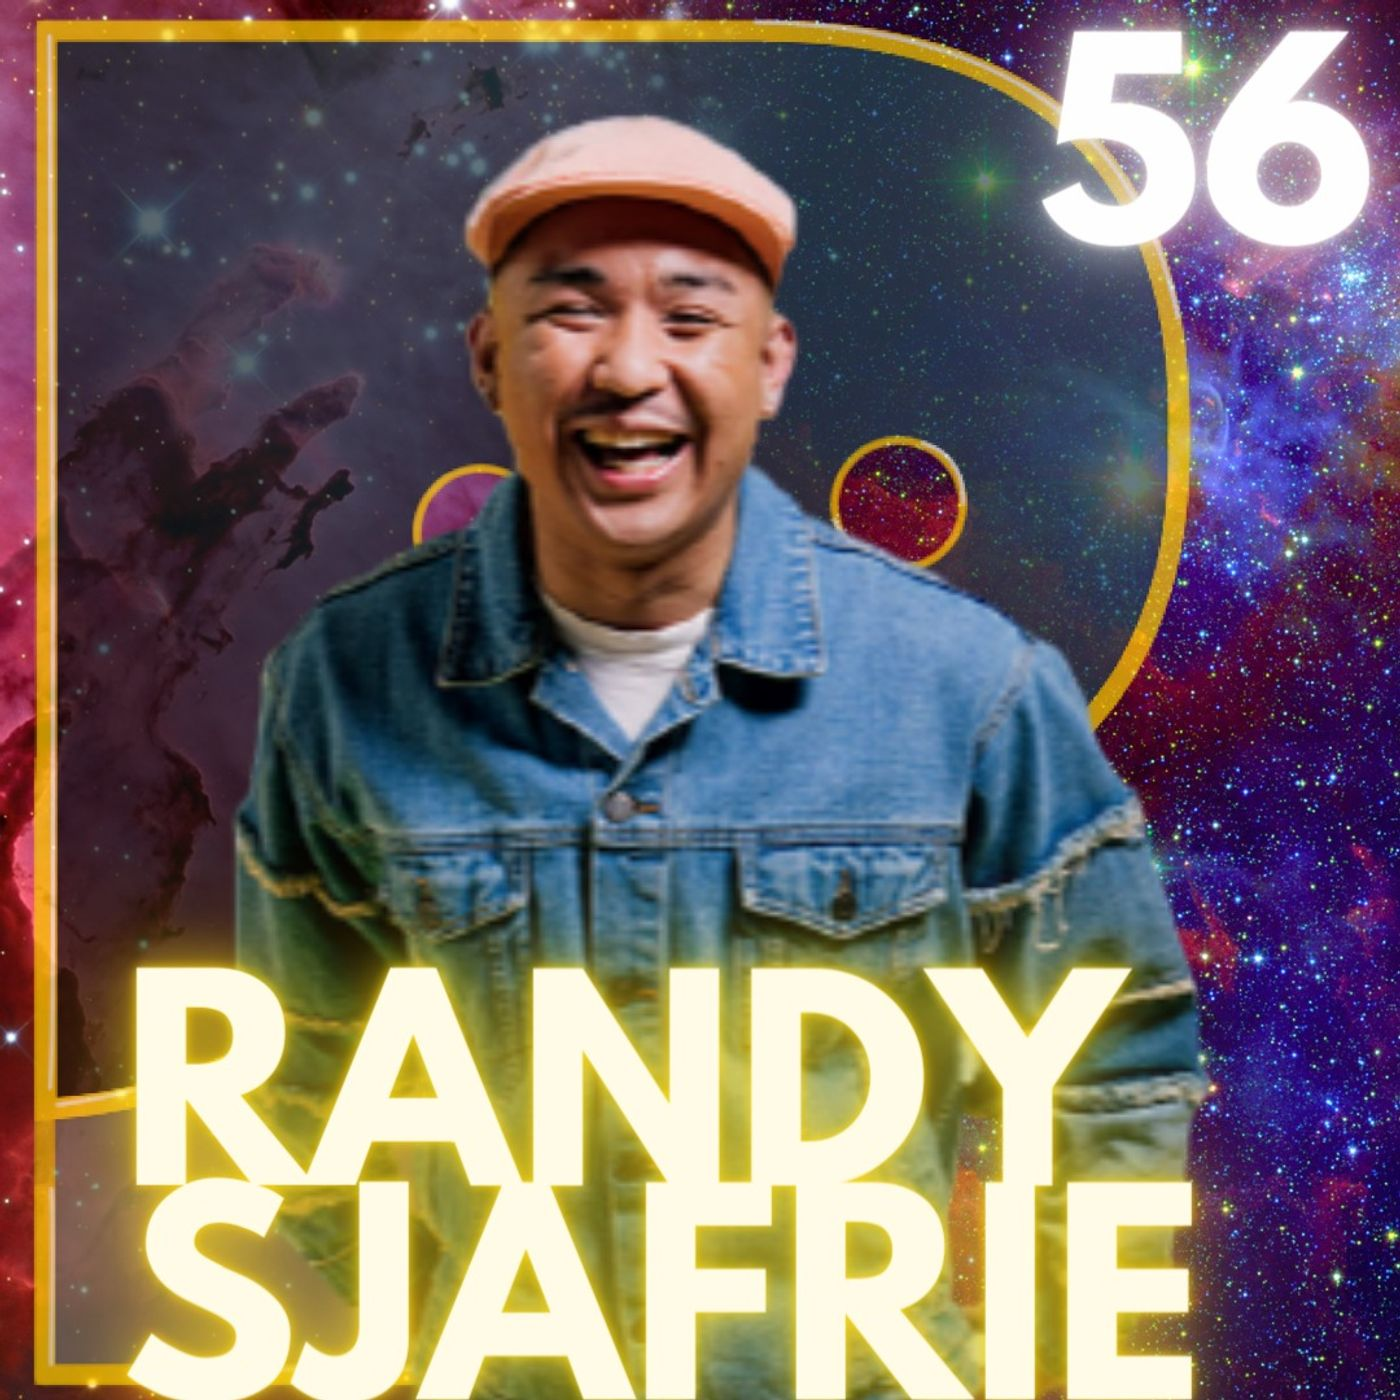 Mai Nights and Air Flights with Randy Sjafrie